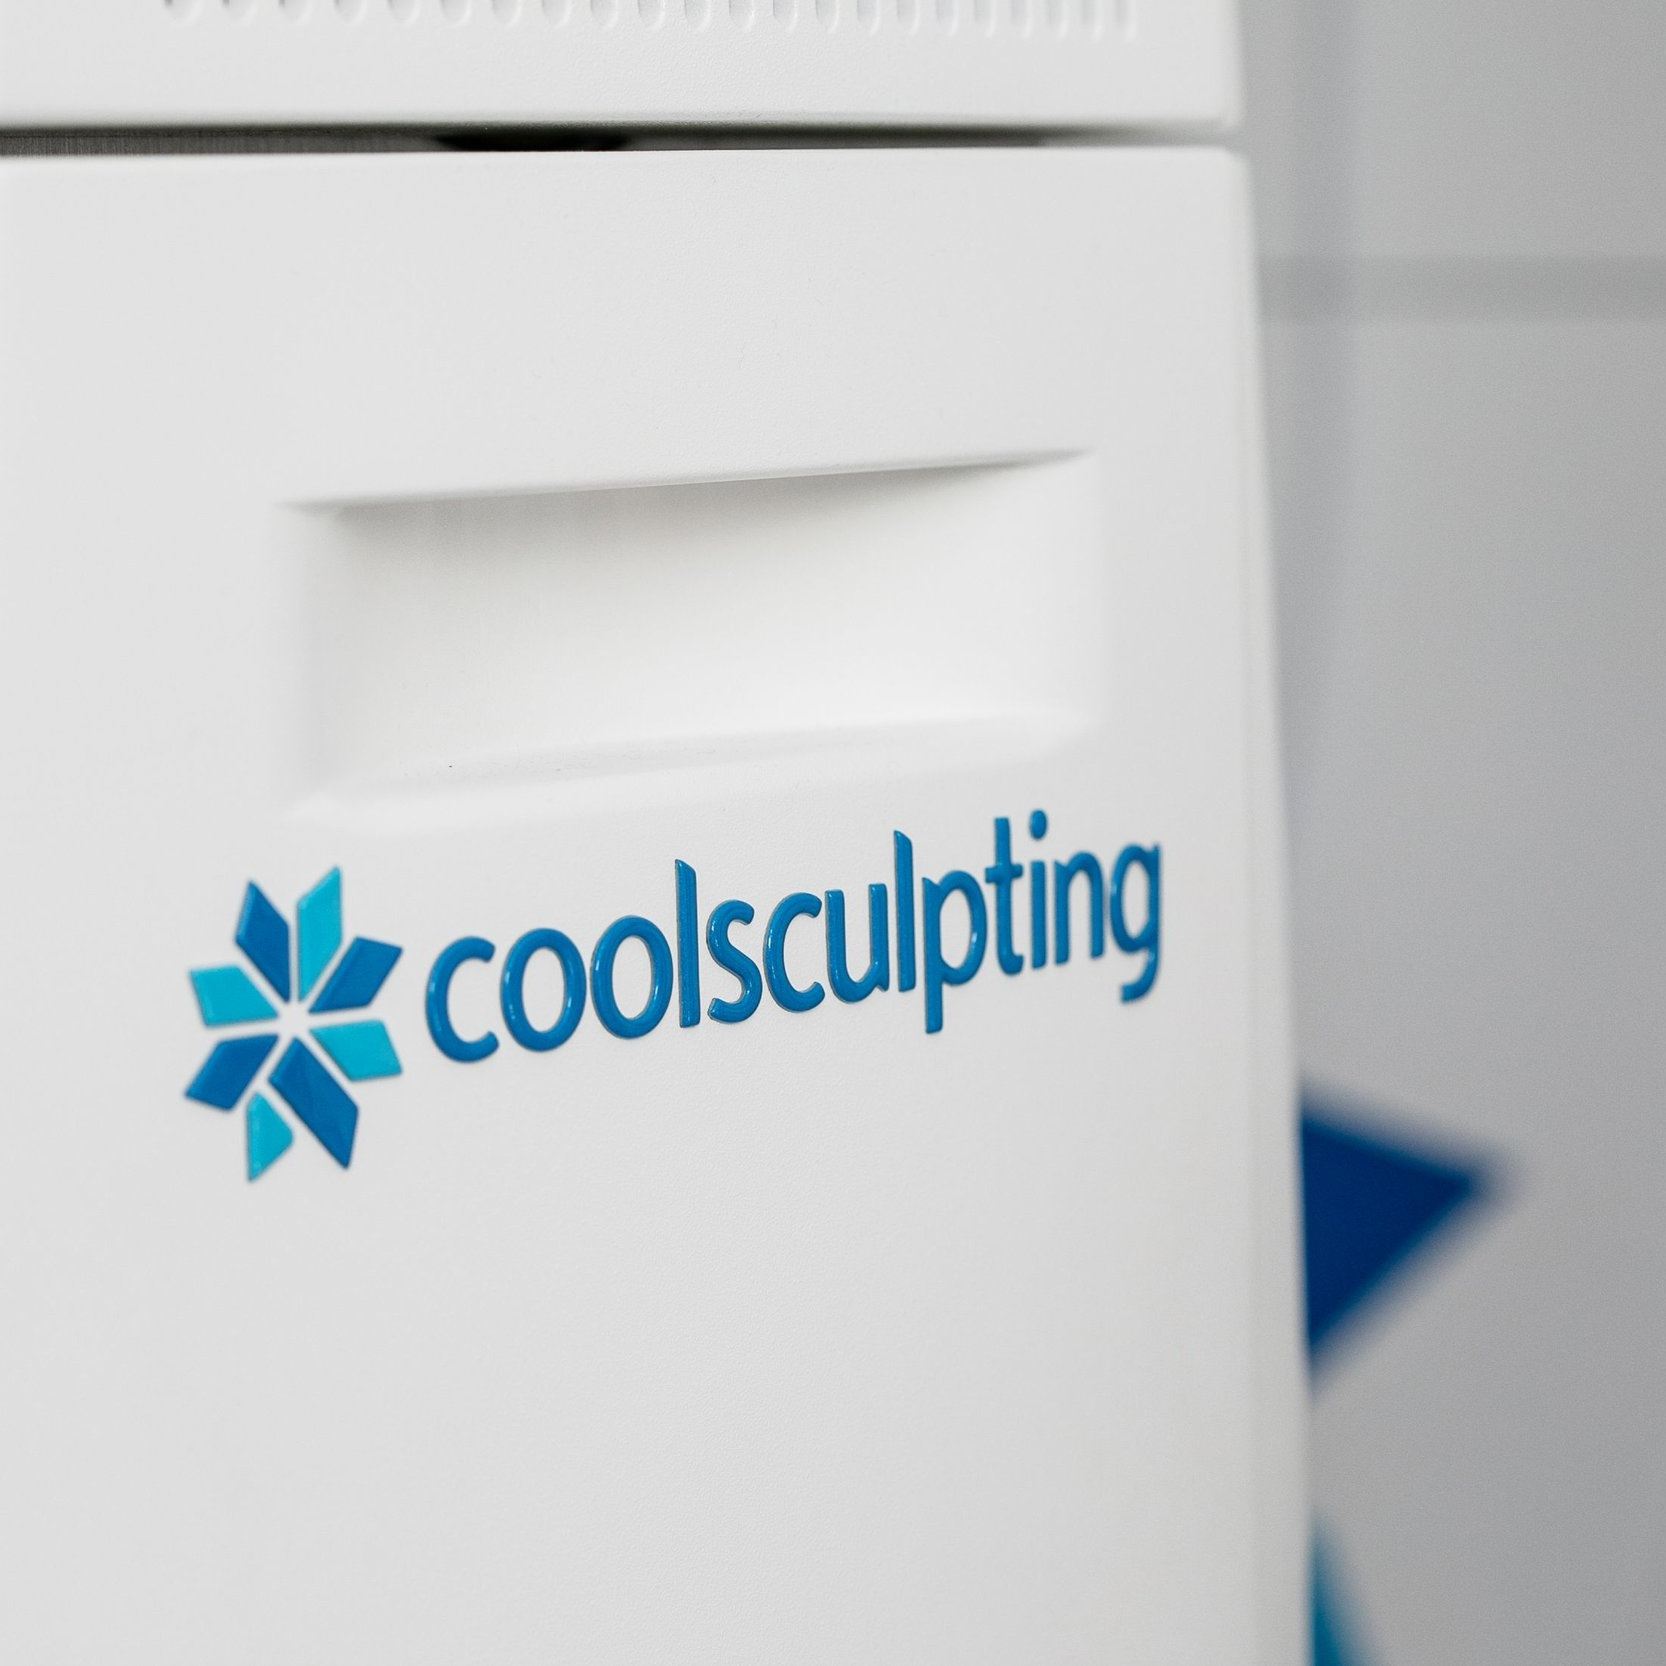 FAT FREEZING - A safe and highly effective treatment that leads to the permanent destruction of fat cells.